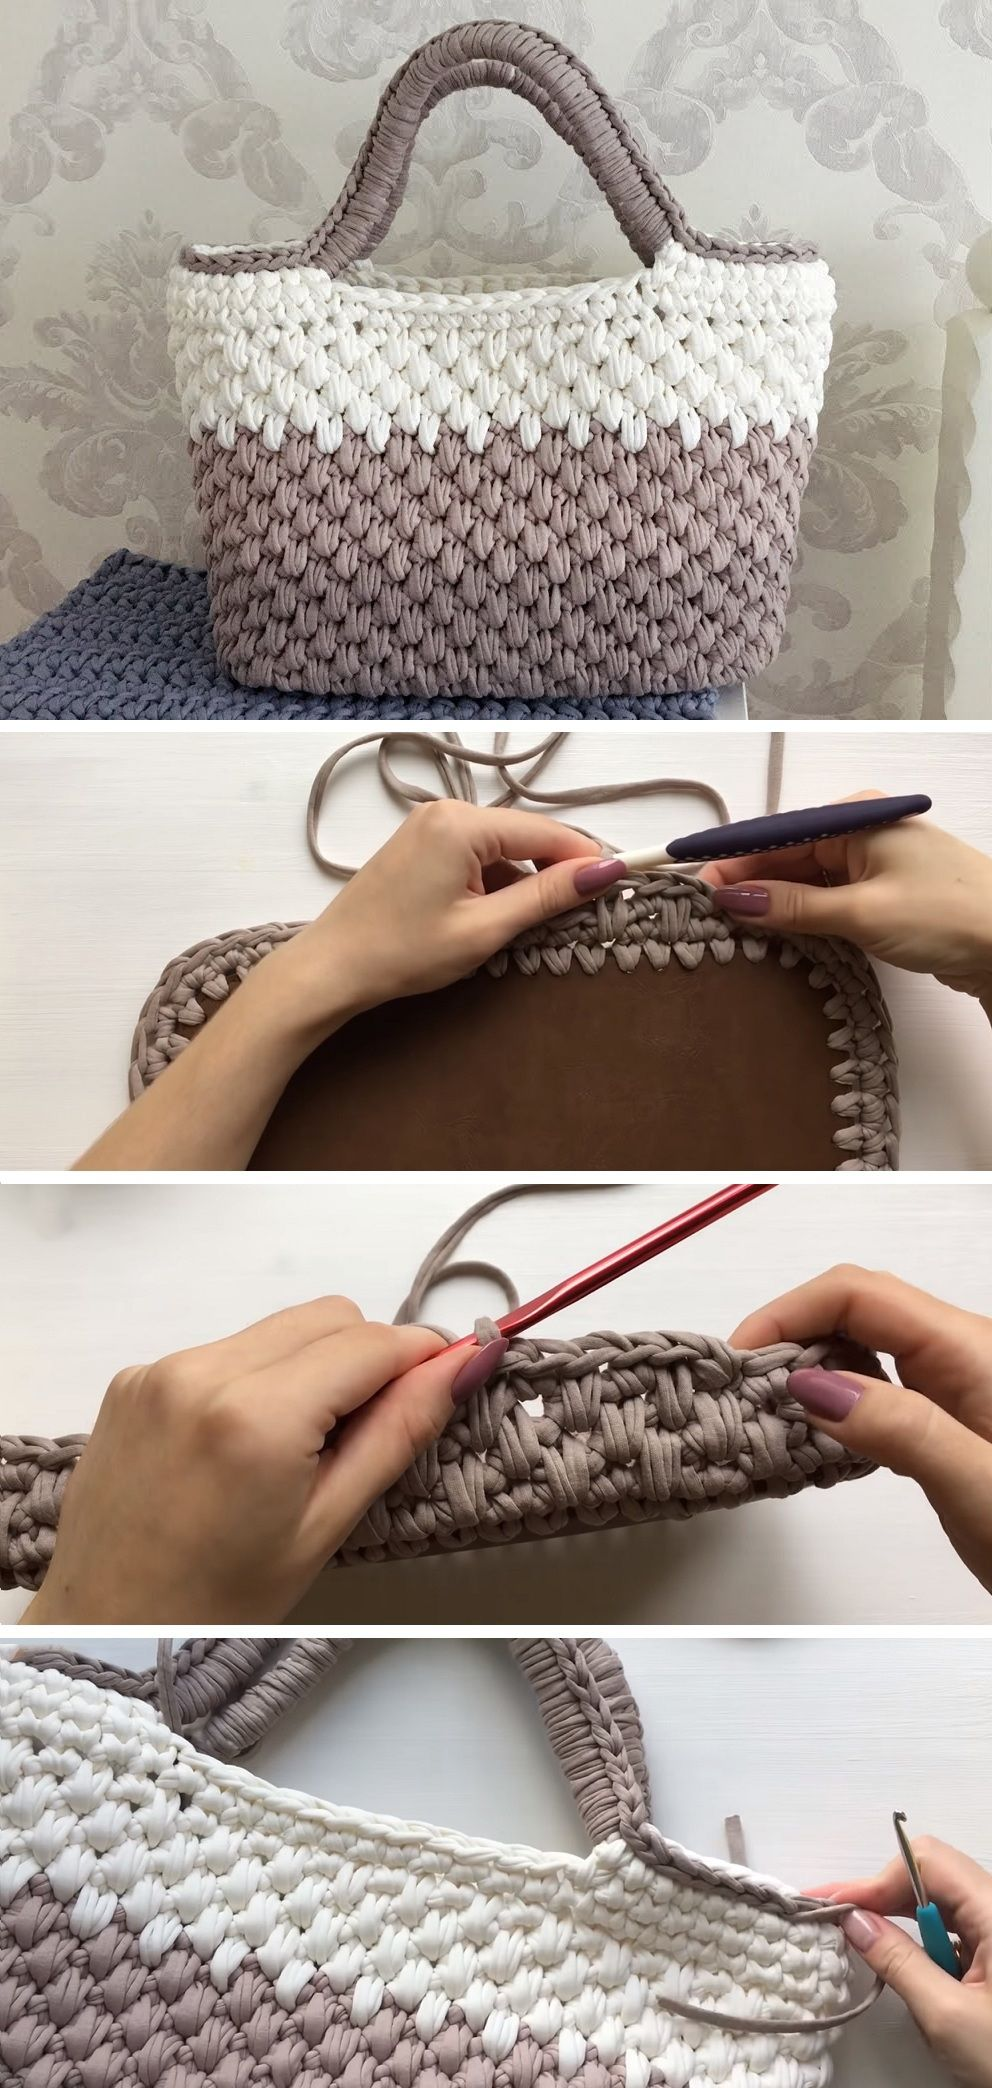 SIMPLE BAG CROCHET PATTERN